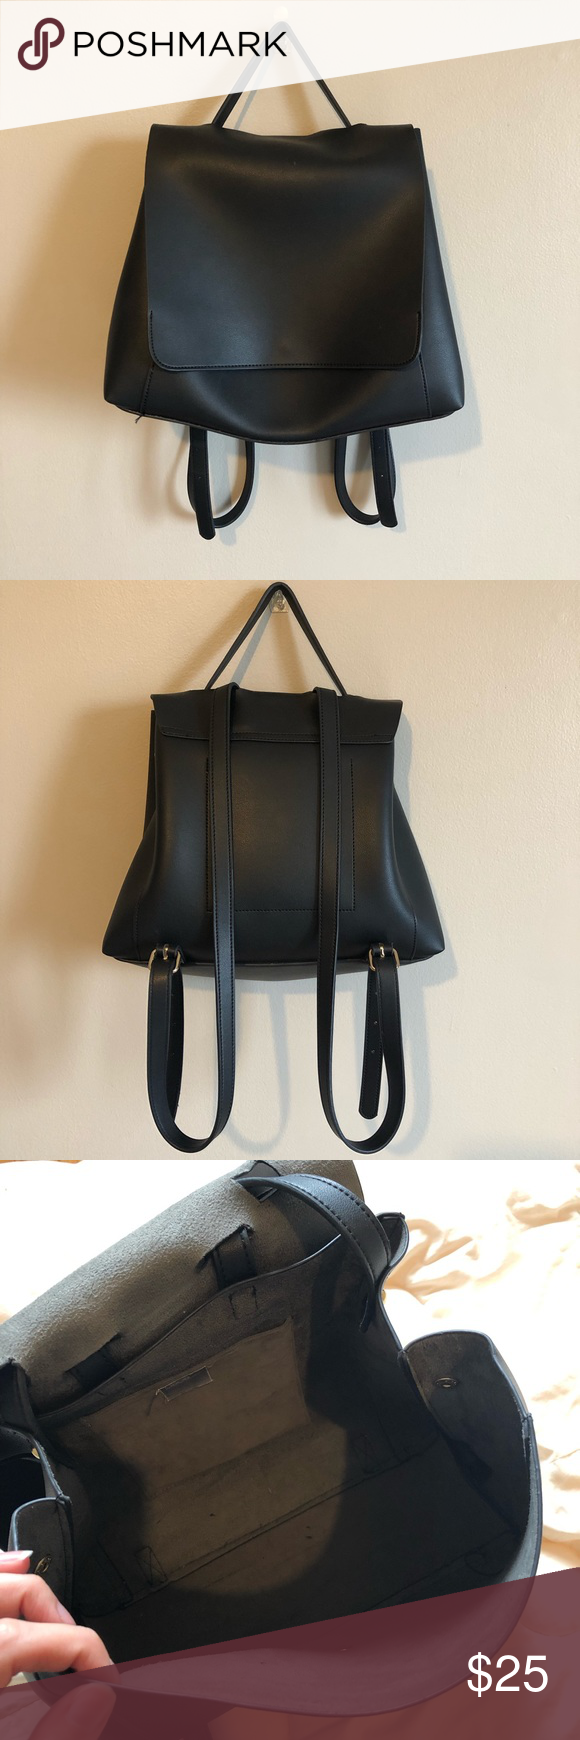 a48d45f32be7 ASOS DESIGN Large Minimal Backpack (Black) ASOS DESIGN Large Minimal  Backpack (Black)